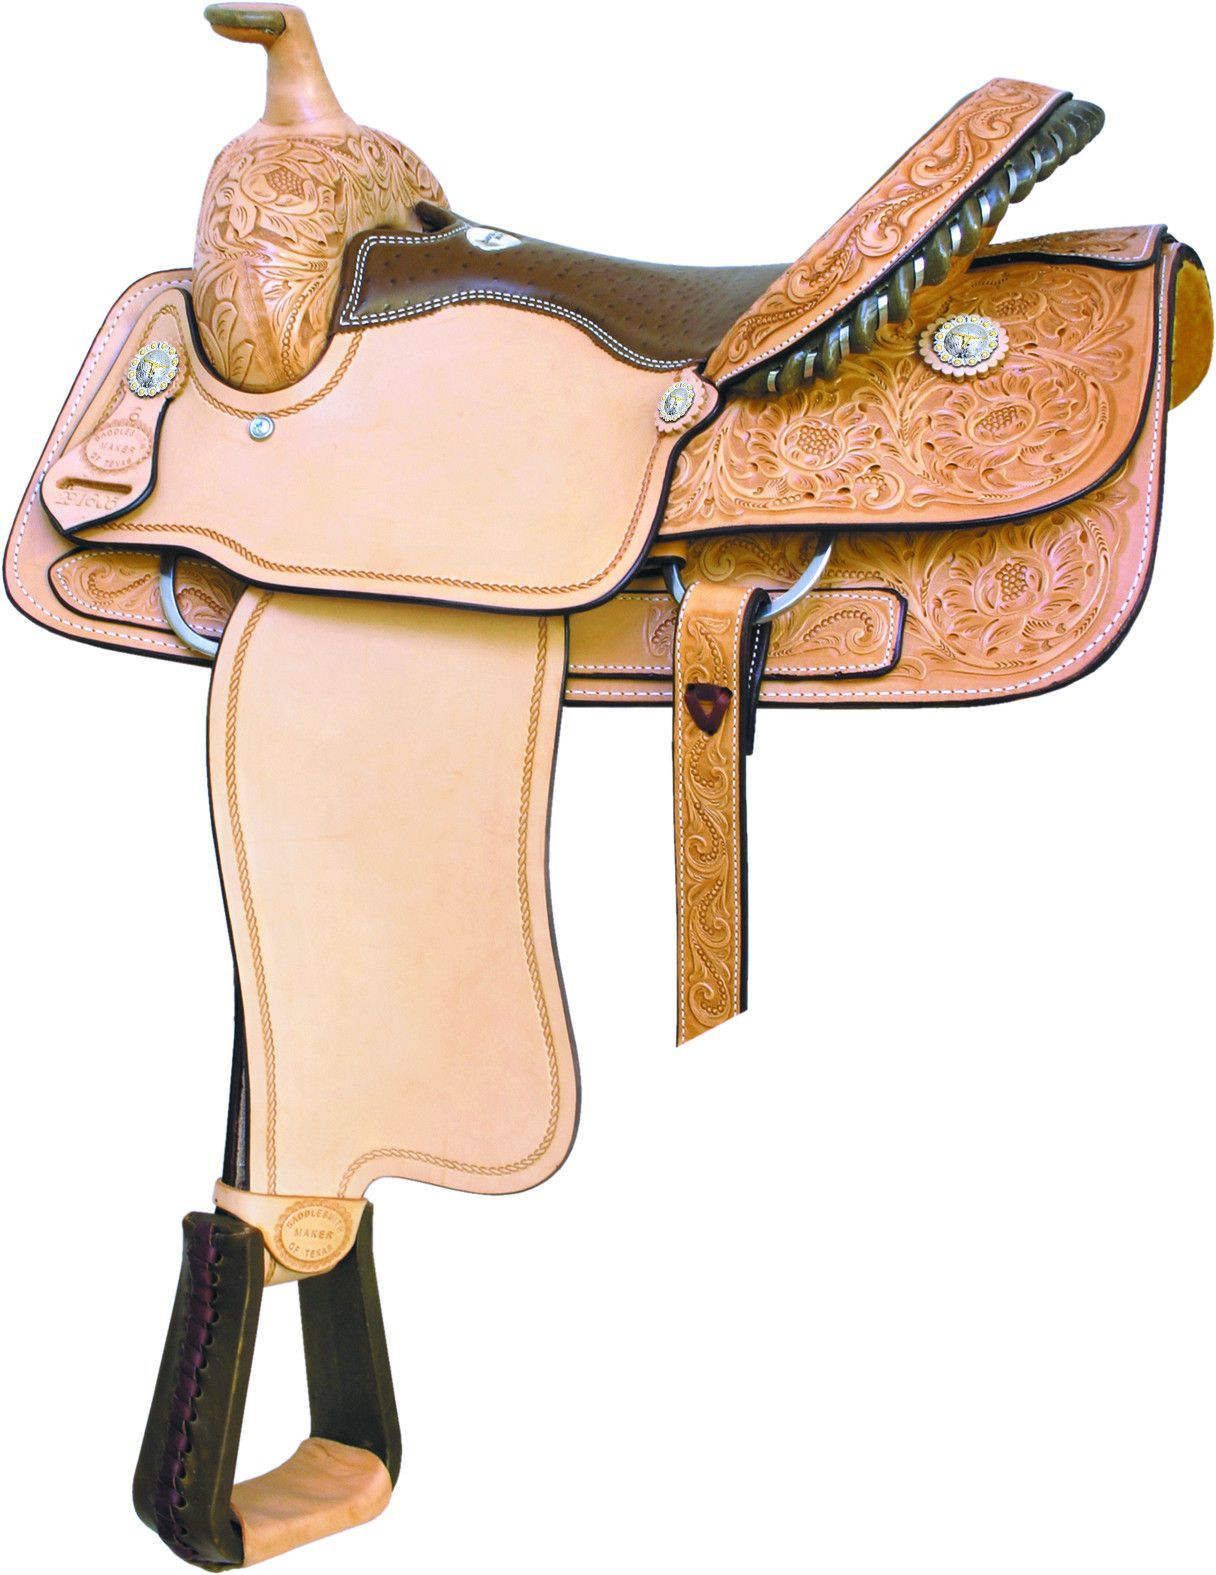 Iud love to try one of these lightweight saddles Ium sure my horse